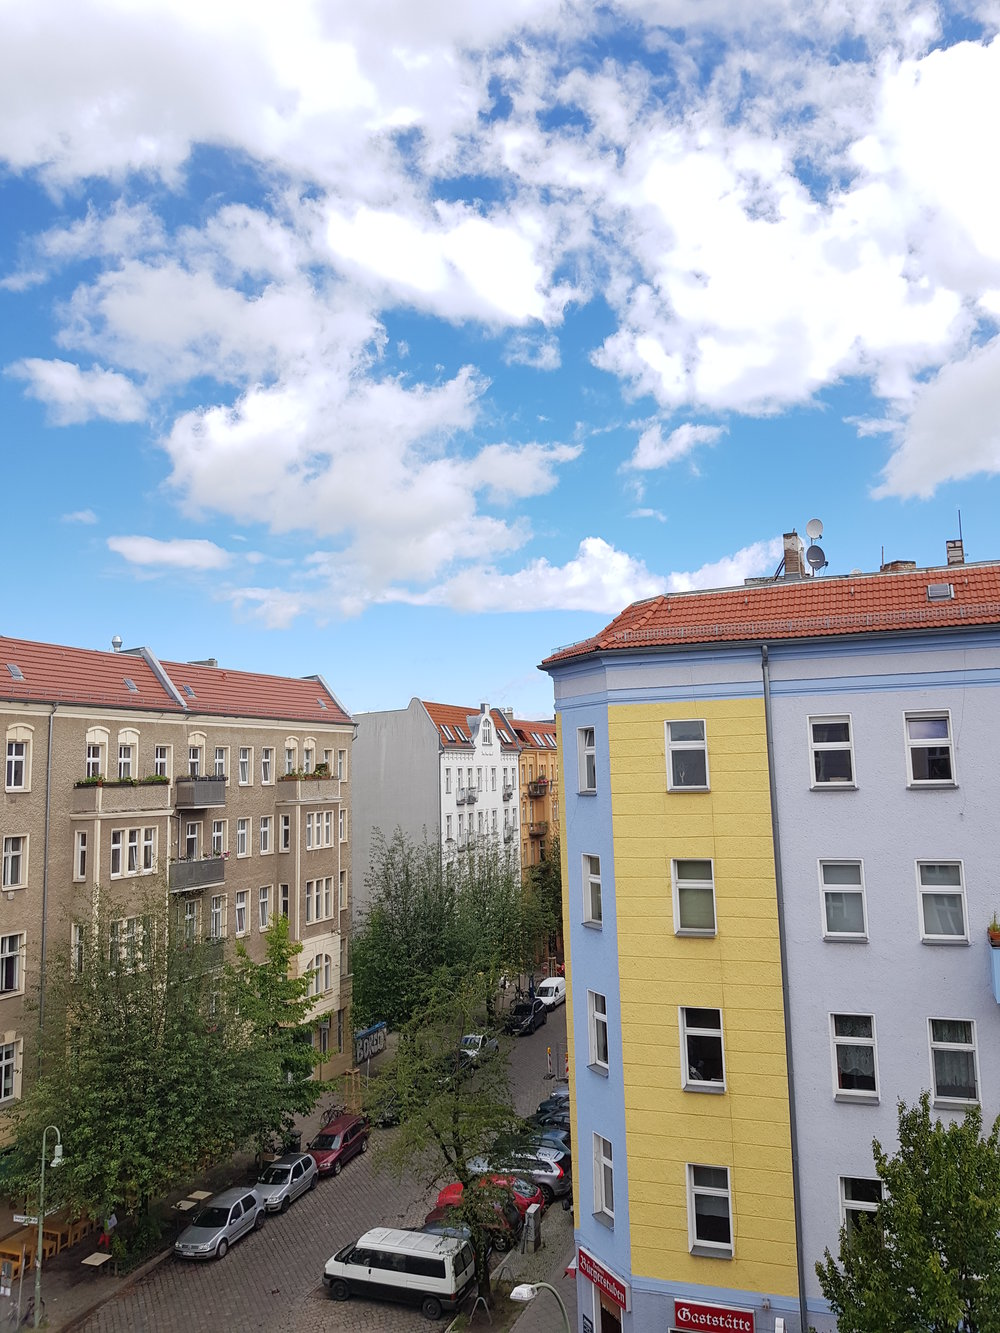 Berlin Air BnB View